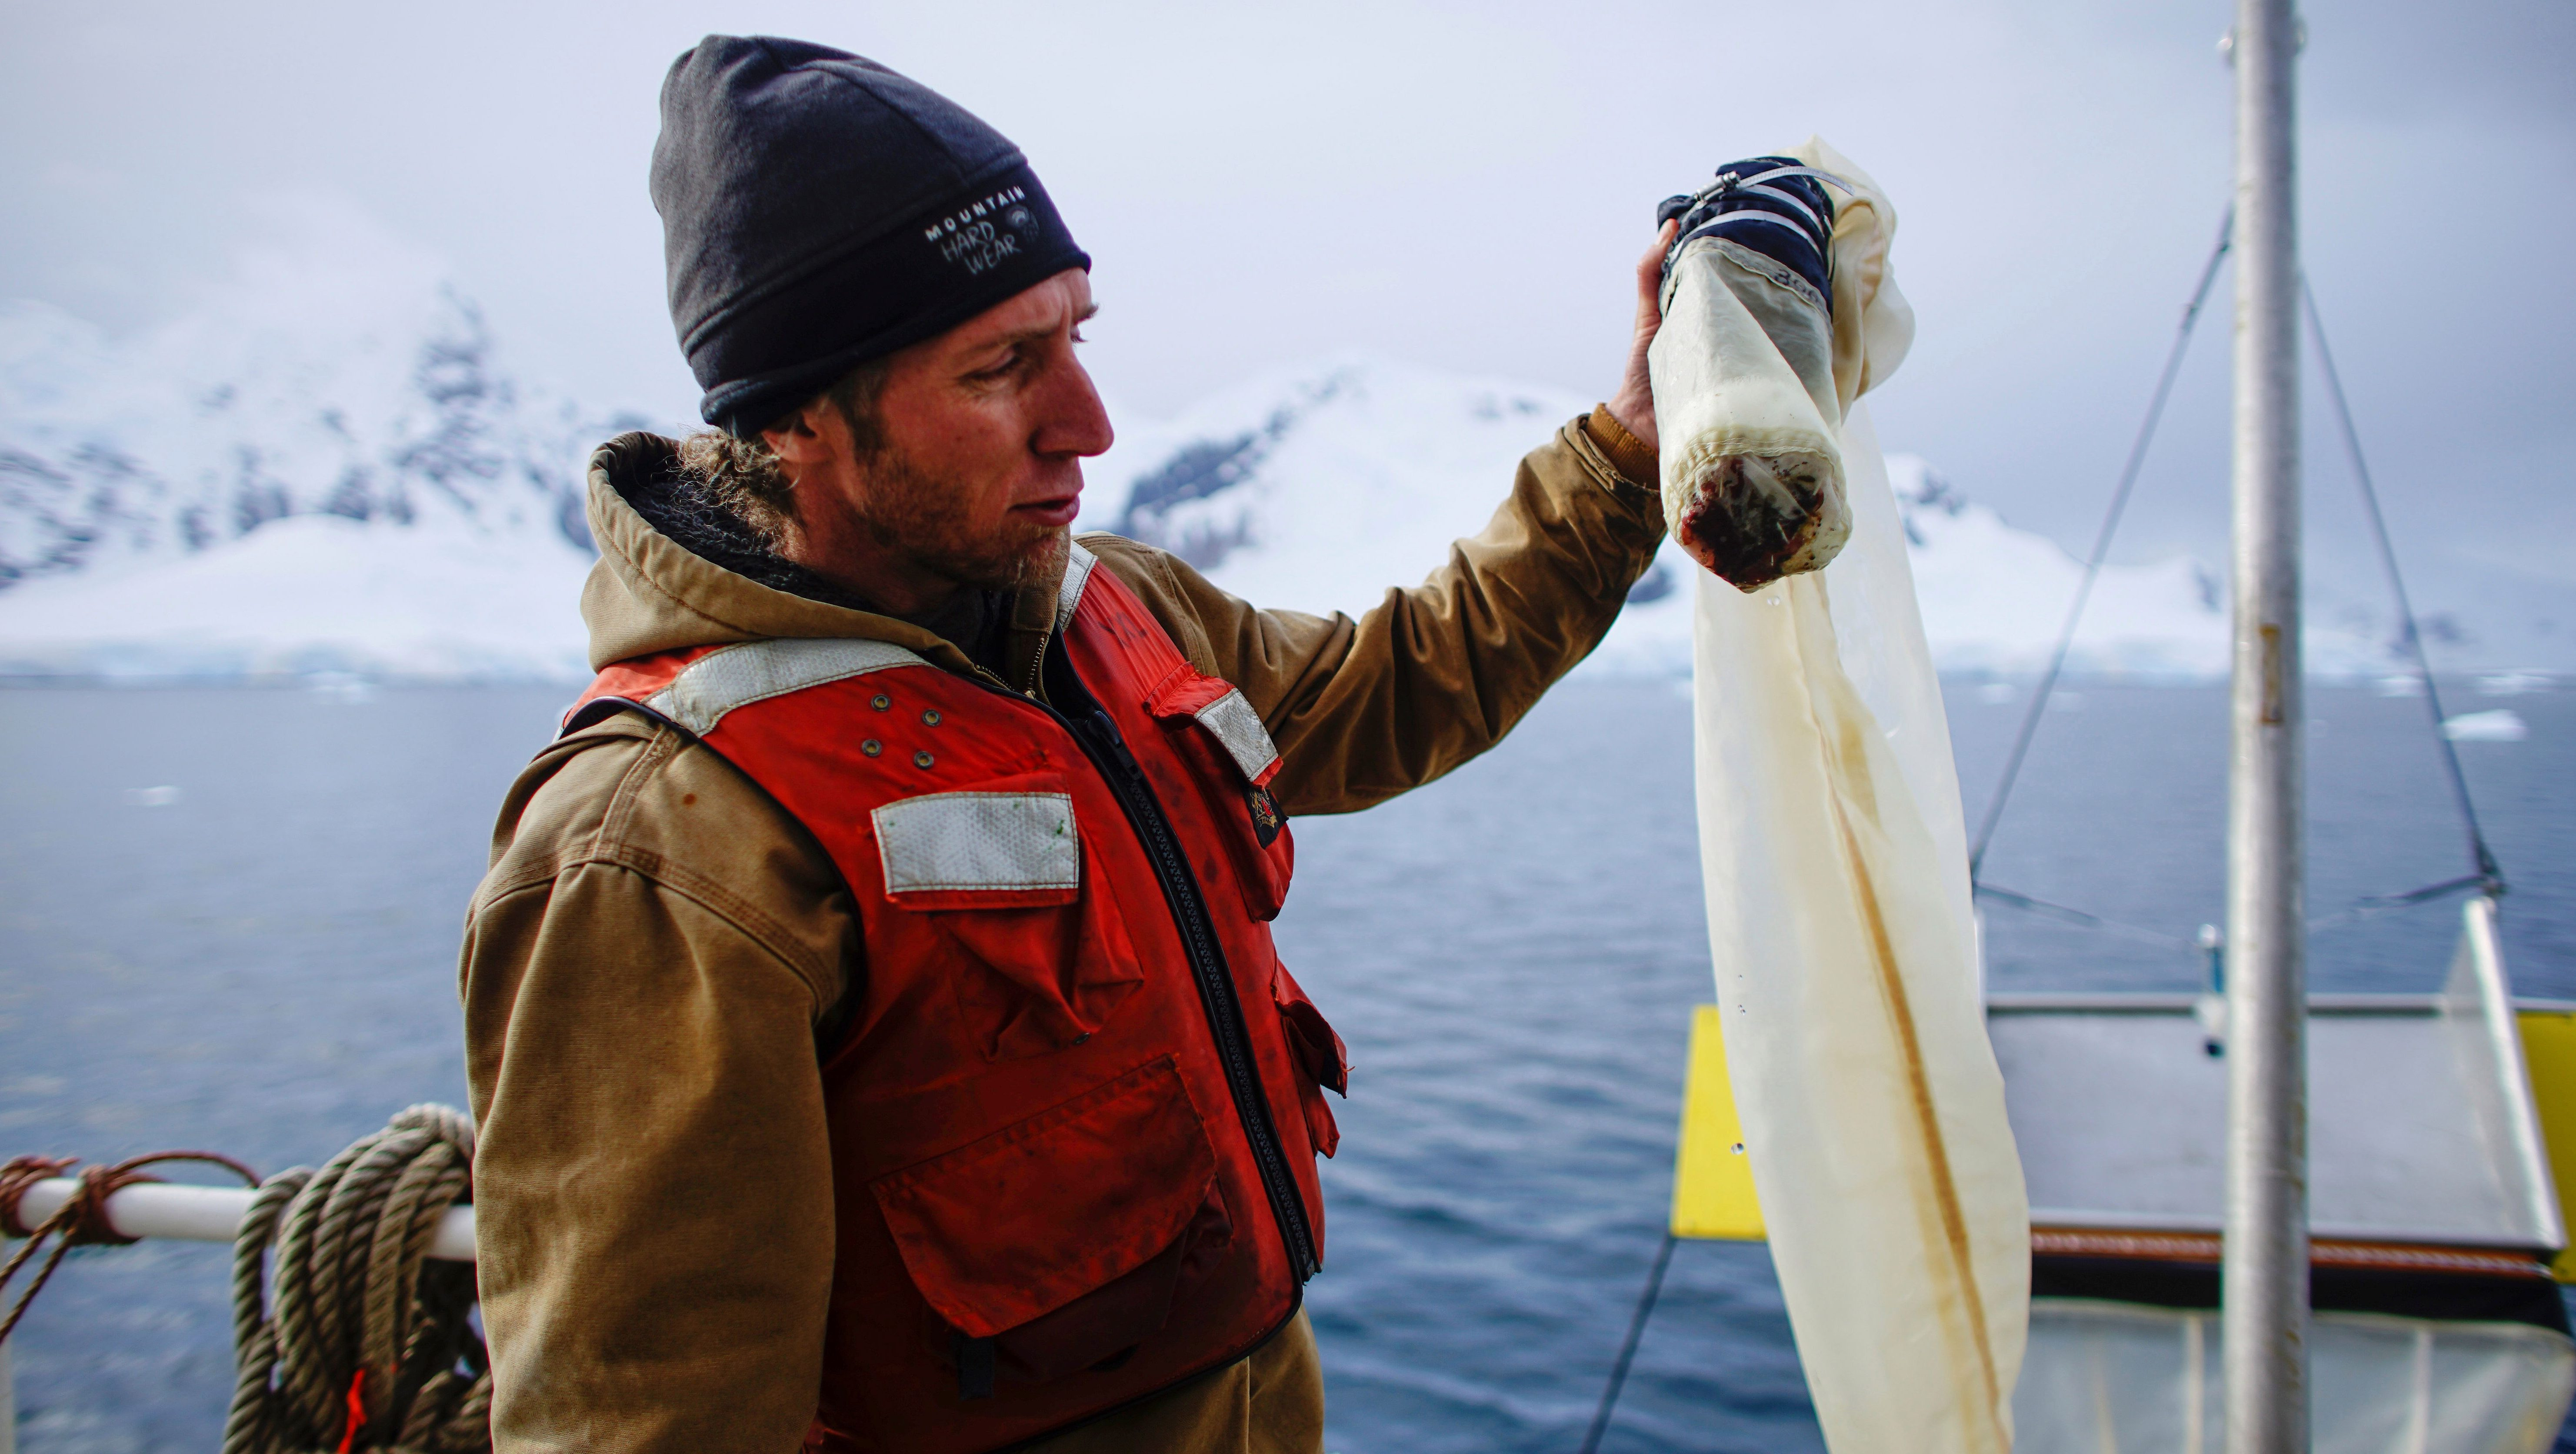 Greenpeace activist Grant Oakes shows a water sample collected using a manta trawl in Neko Harbour, Antarctica, February 16, 2018. Picture taken February 16, 2018. REUTERS/Alexandre Meneghini - RC1B04B8EB50